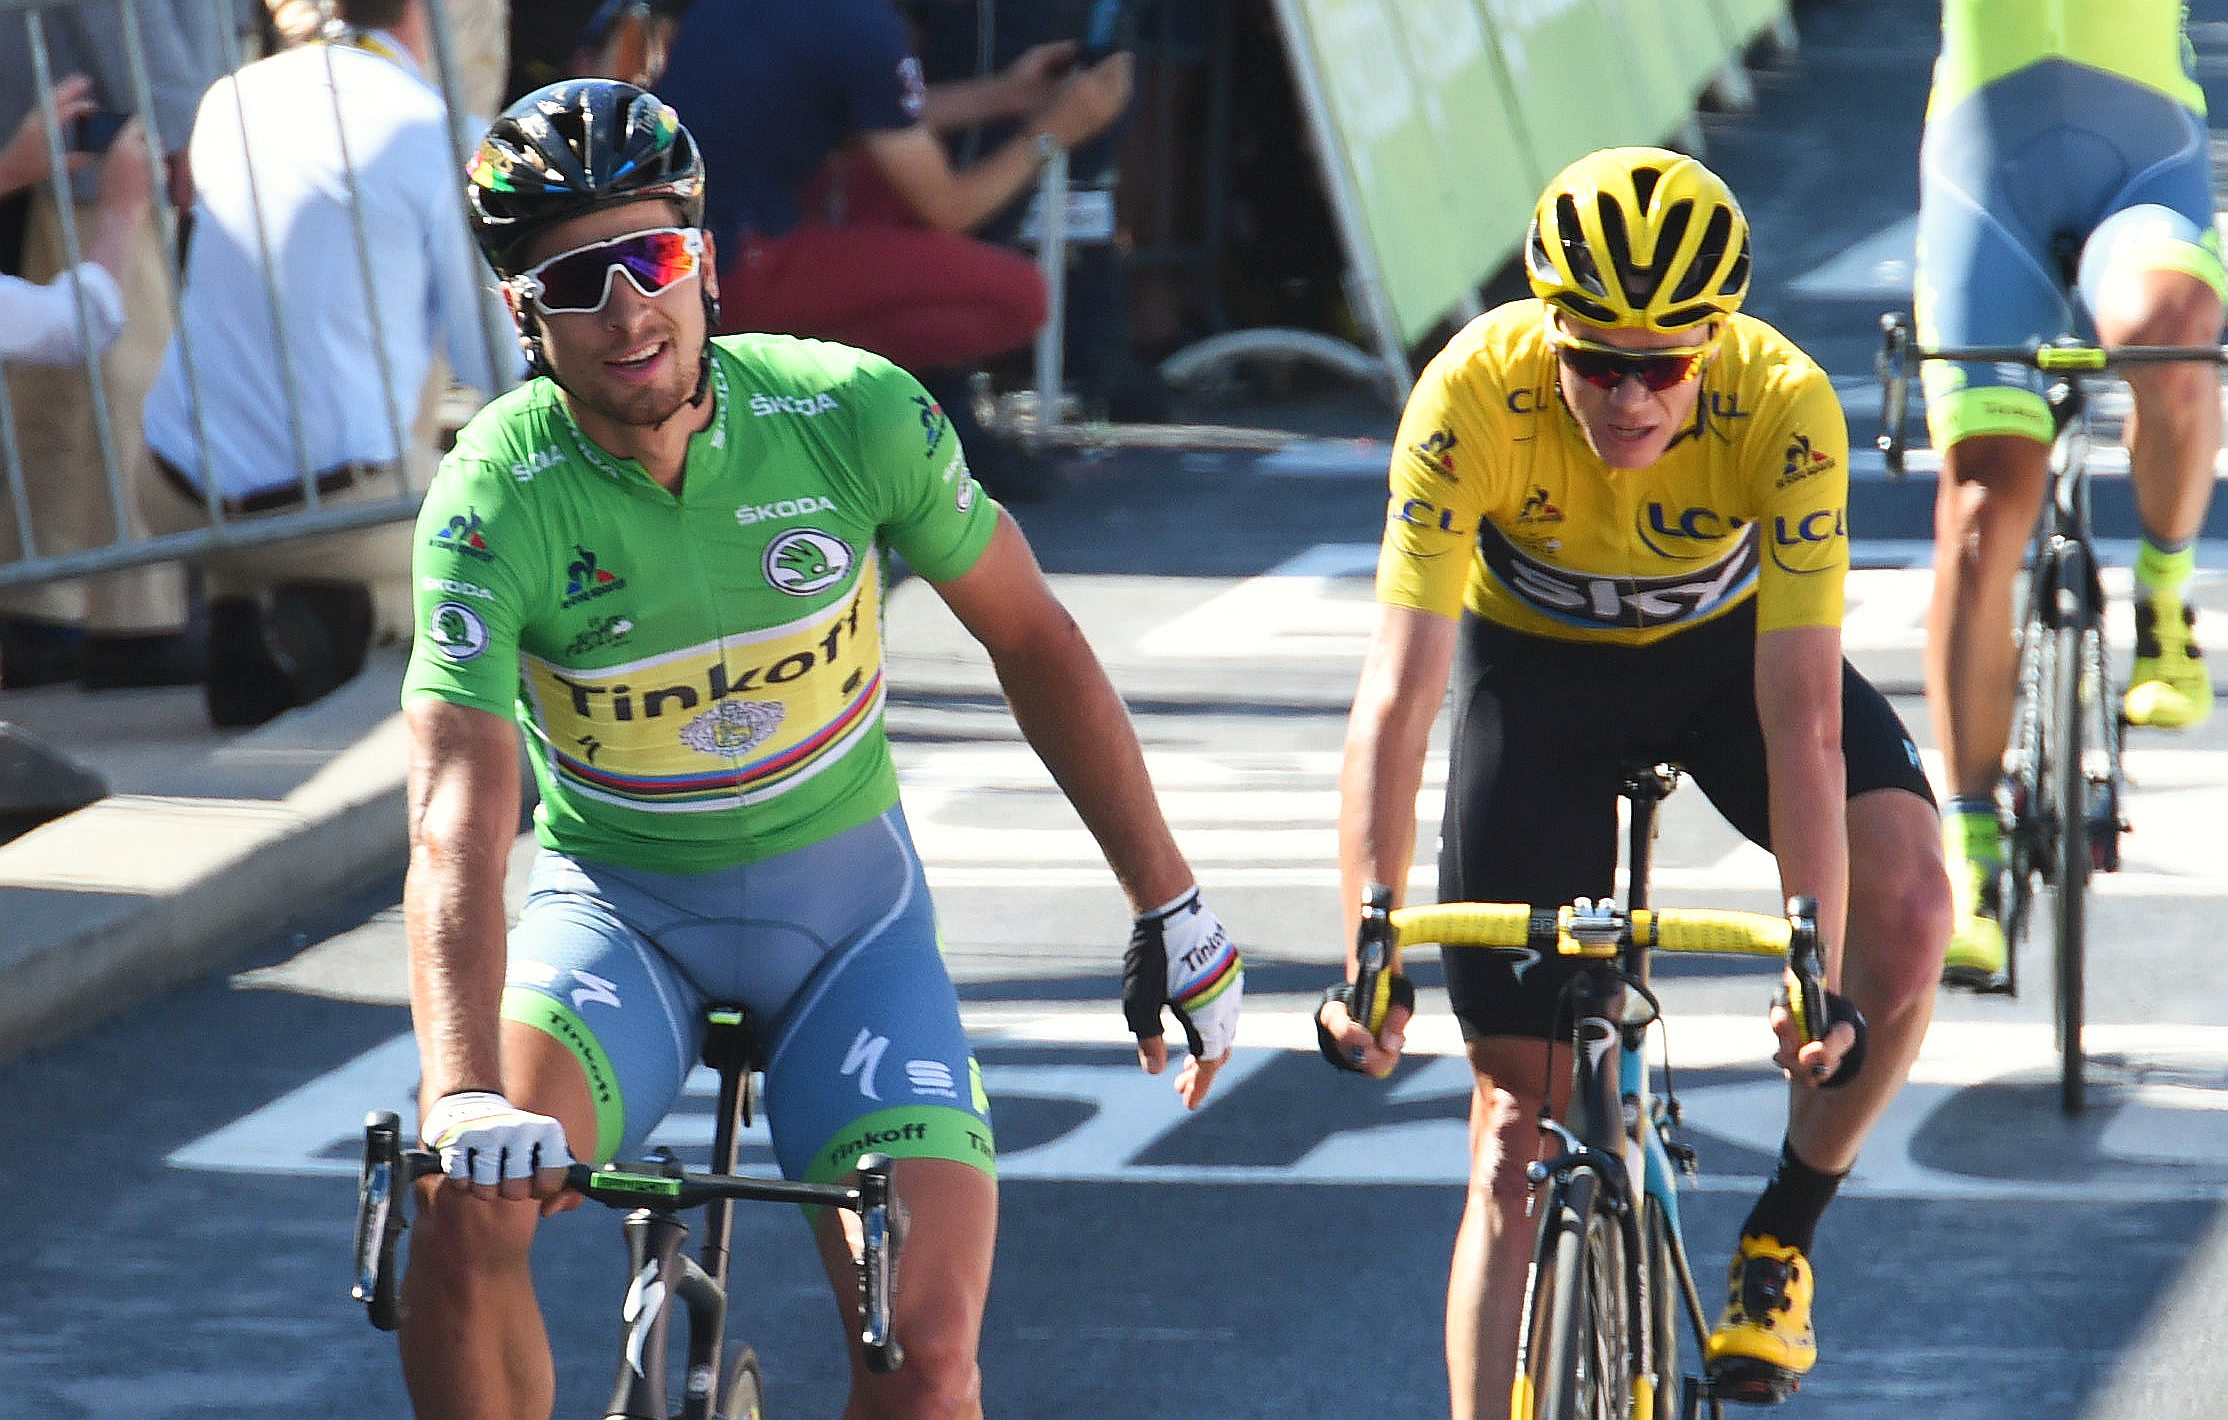 13-07-2016 Tour De France; Tappa 11 Carcassonne - Montpellier; 2016, Tinkoff; 2016, Team Sky; Sagan, Peter; Froome, Christopher; Montpellier;